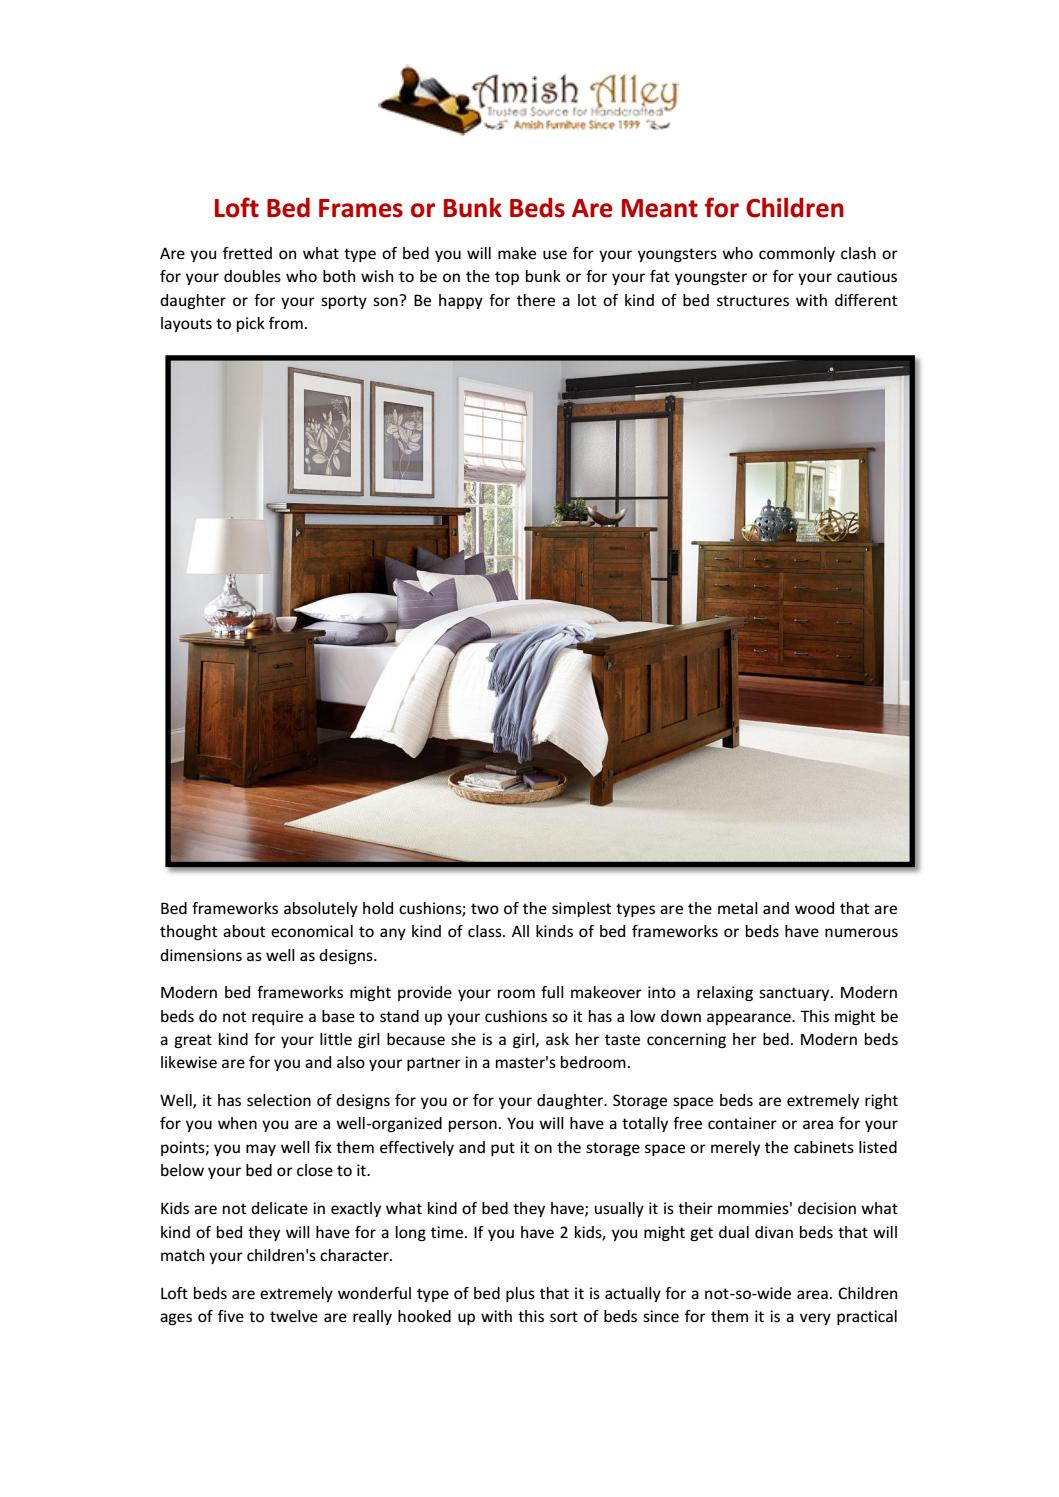 Picture of: Loft Bed Frames Or Bunk Beds Are Meant For Children By Amish Alley Issuu